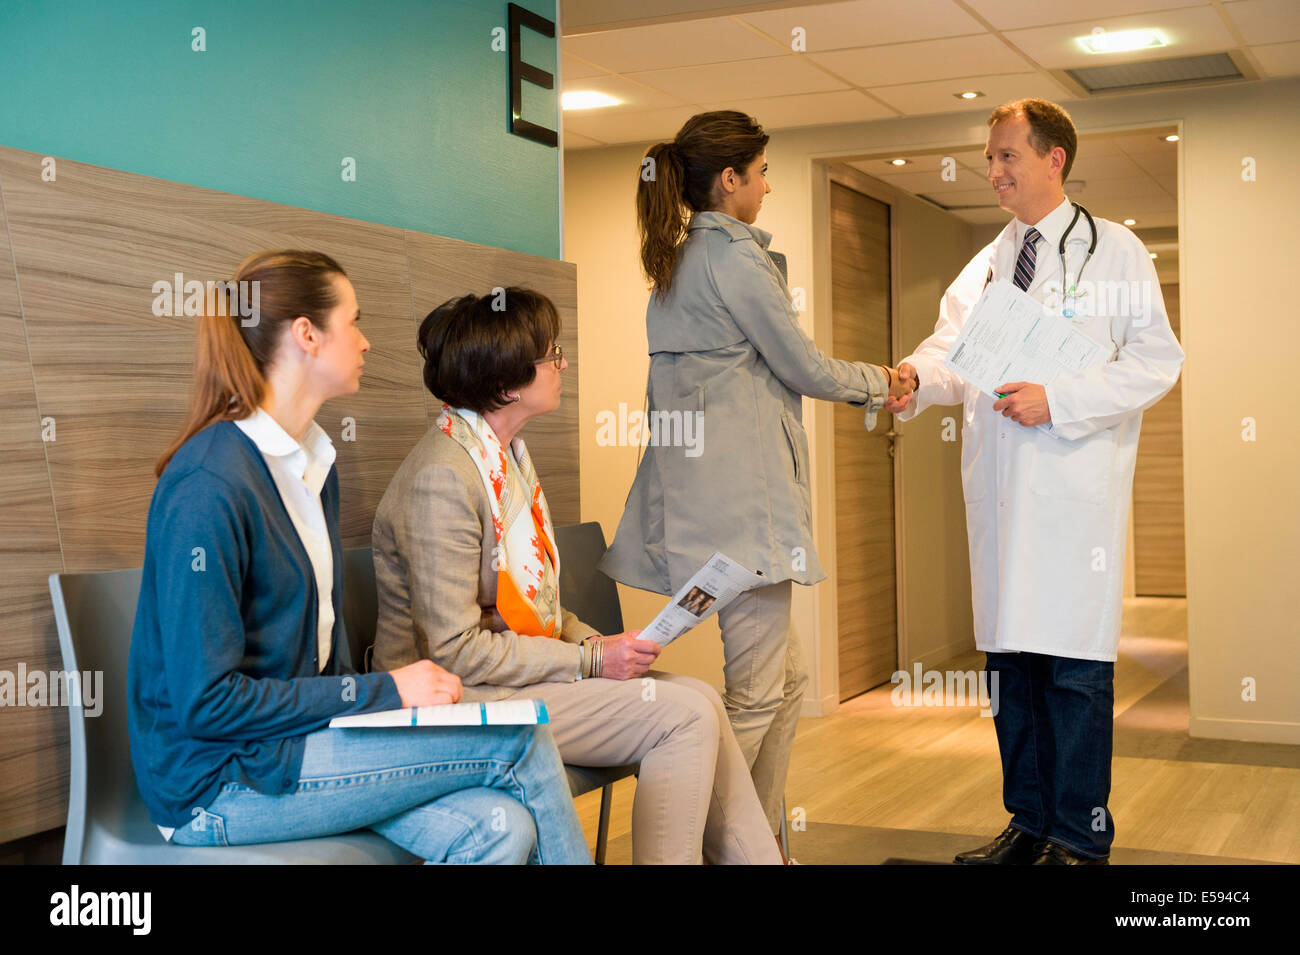 Male doctor shaking hands with his patient in waiting room - Stock Image